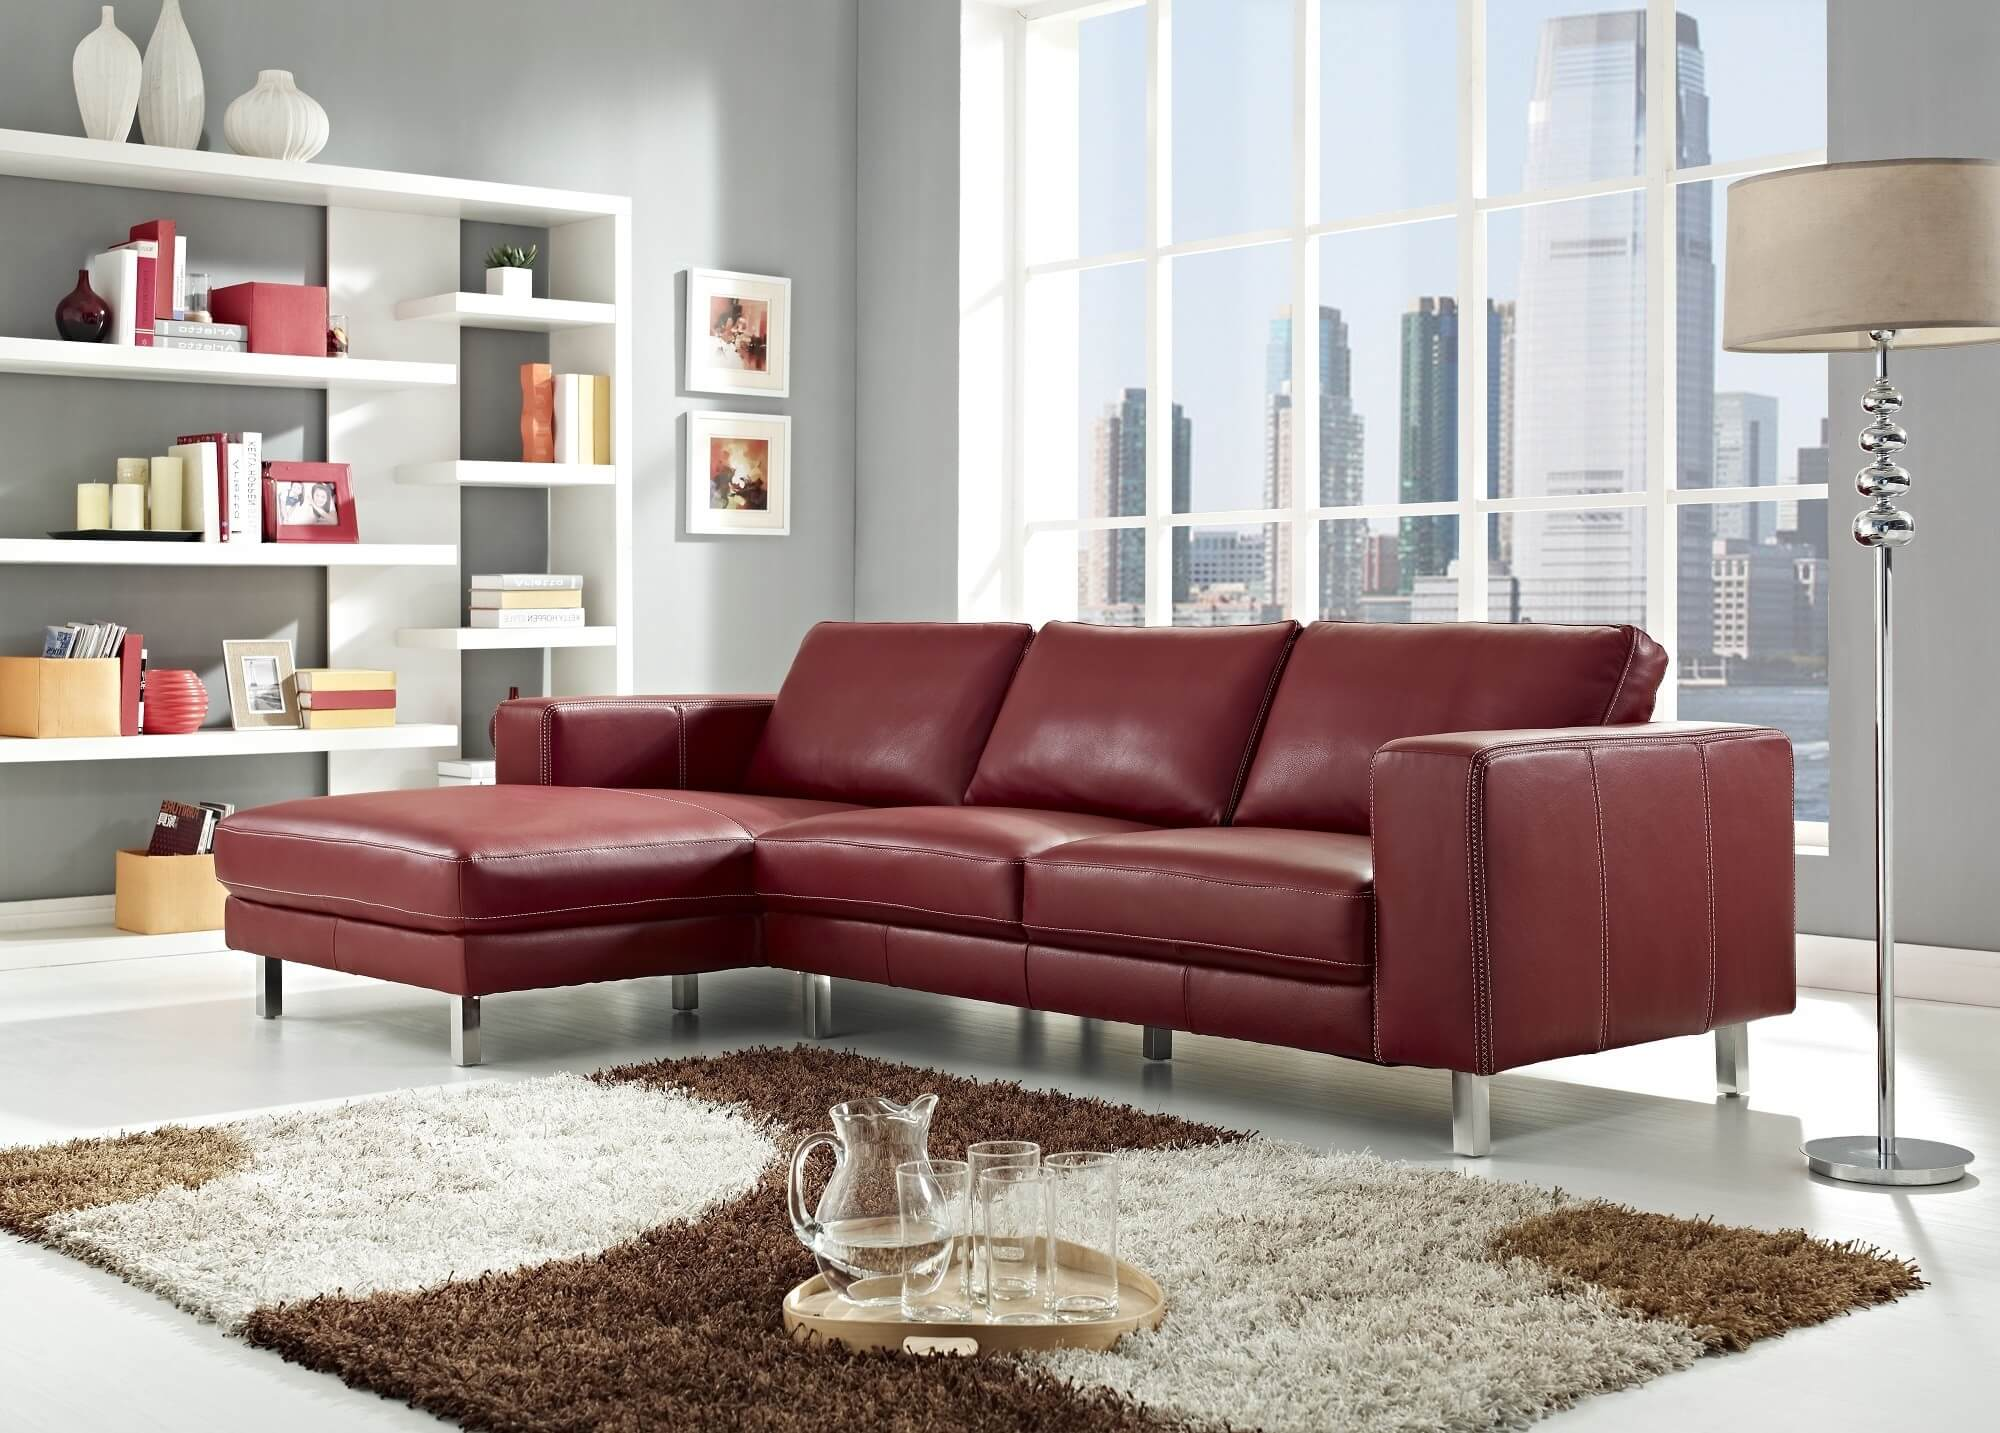 18 Stylish Modern Red Sectional Sofas ~ Furniture Sectionals Sofa